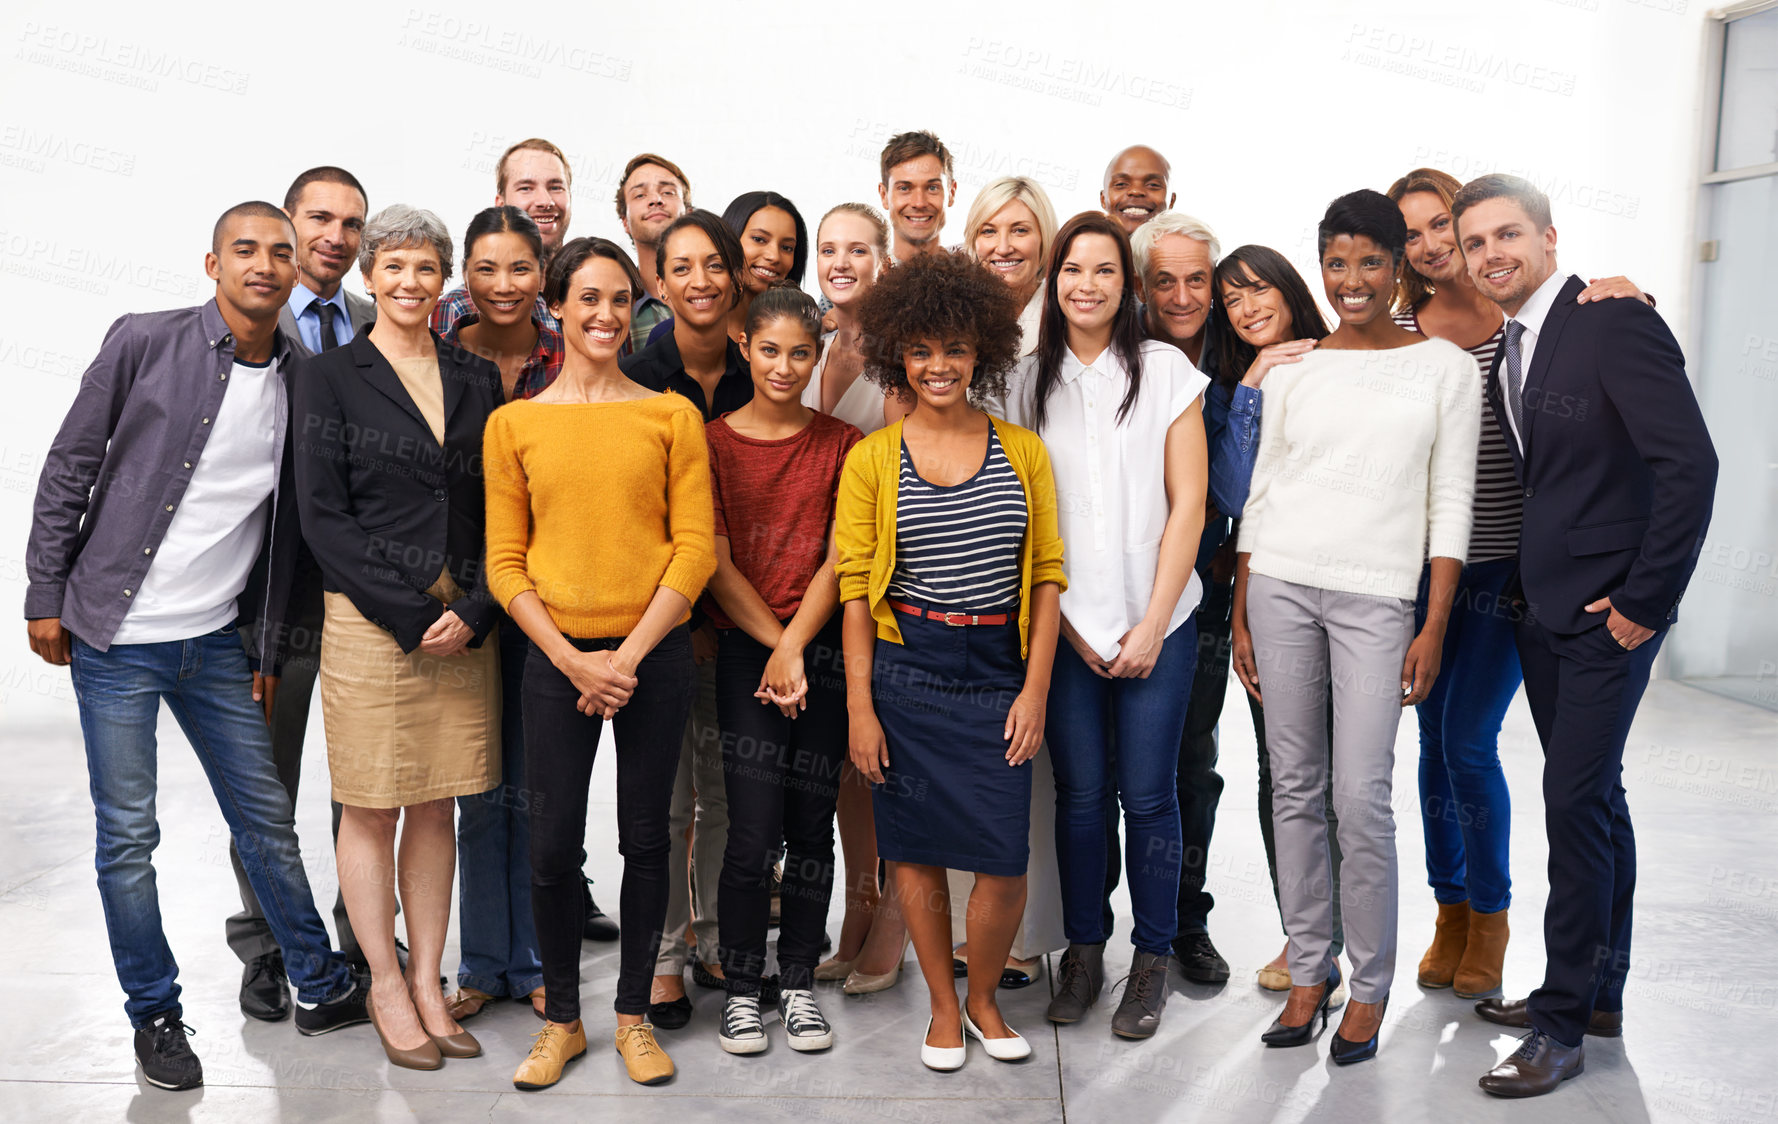 diversity at work Gender diversity in the workplace - in a world that has grown increasingly smaller due to mass media, world travel, and readily available information, the workplace has grown increasingly diverse in both gender and cultural aspects.